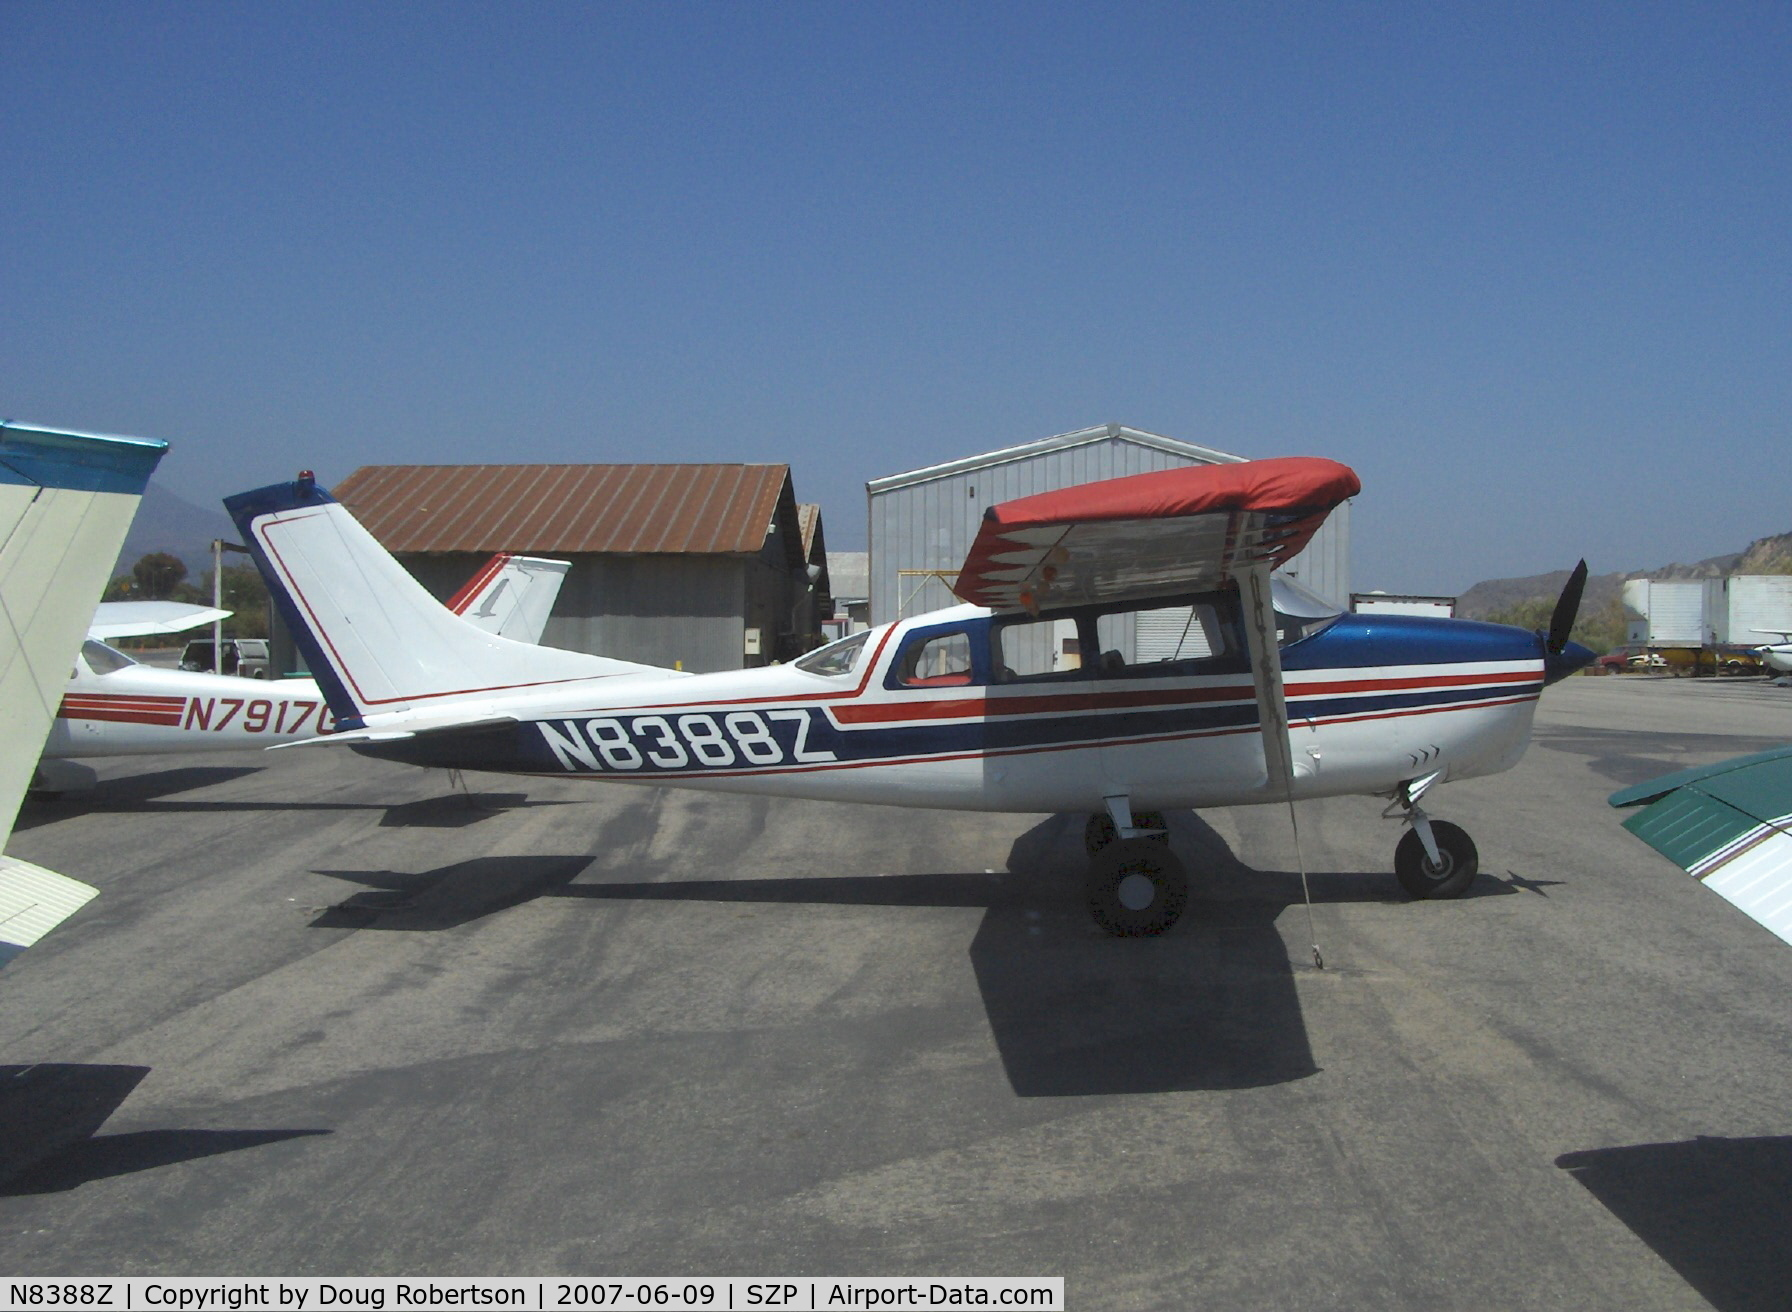 N8388Z, 1963 Cessna 210-5 C/N 205-0388, 1963 Cessna 210-5 (205) UTILINE, fixed gear version of C210, Continental IO-470-E 260 Hp